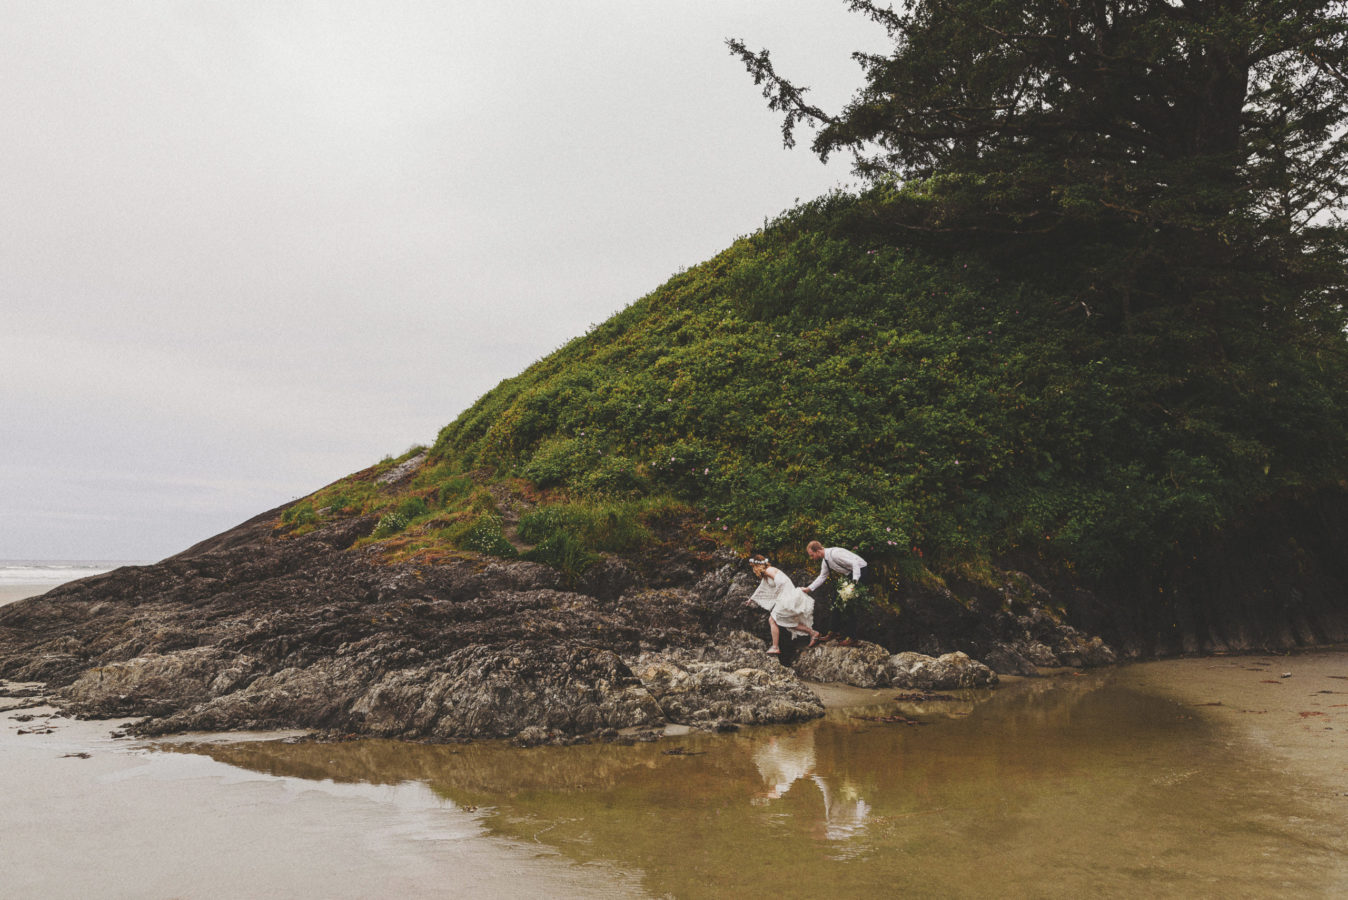 wedding couple climbing on rocks with reflection in the water below